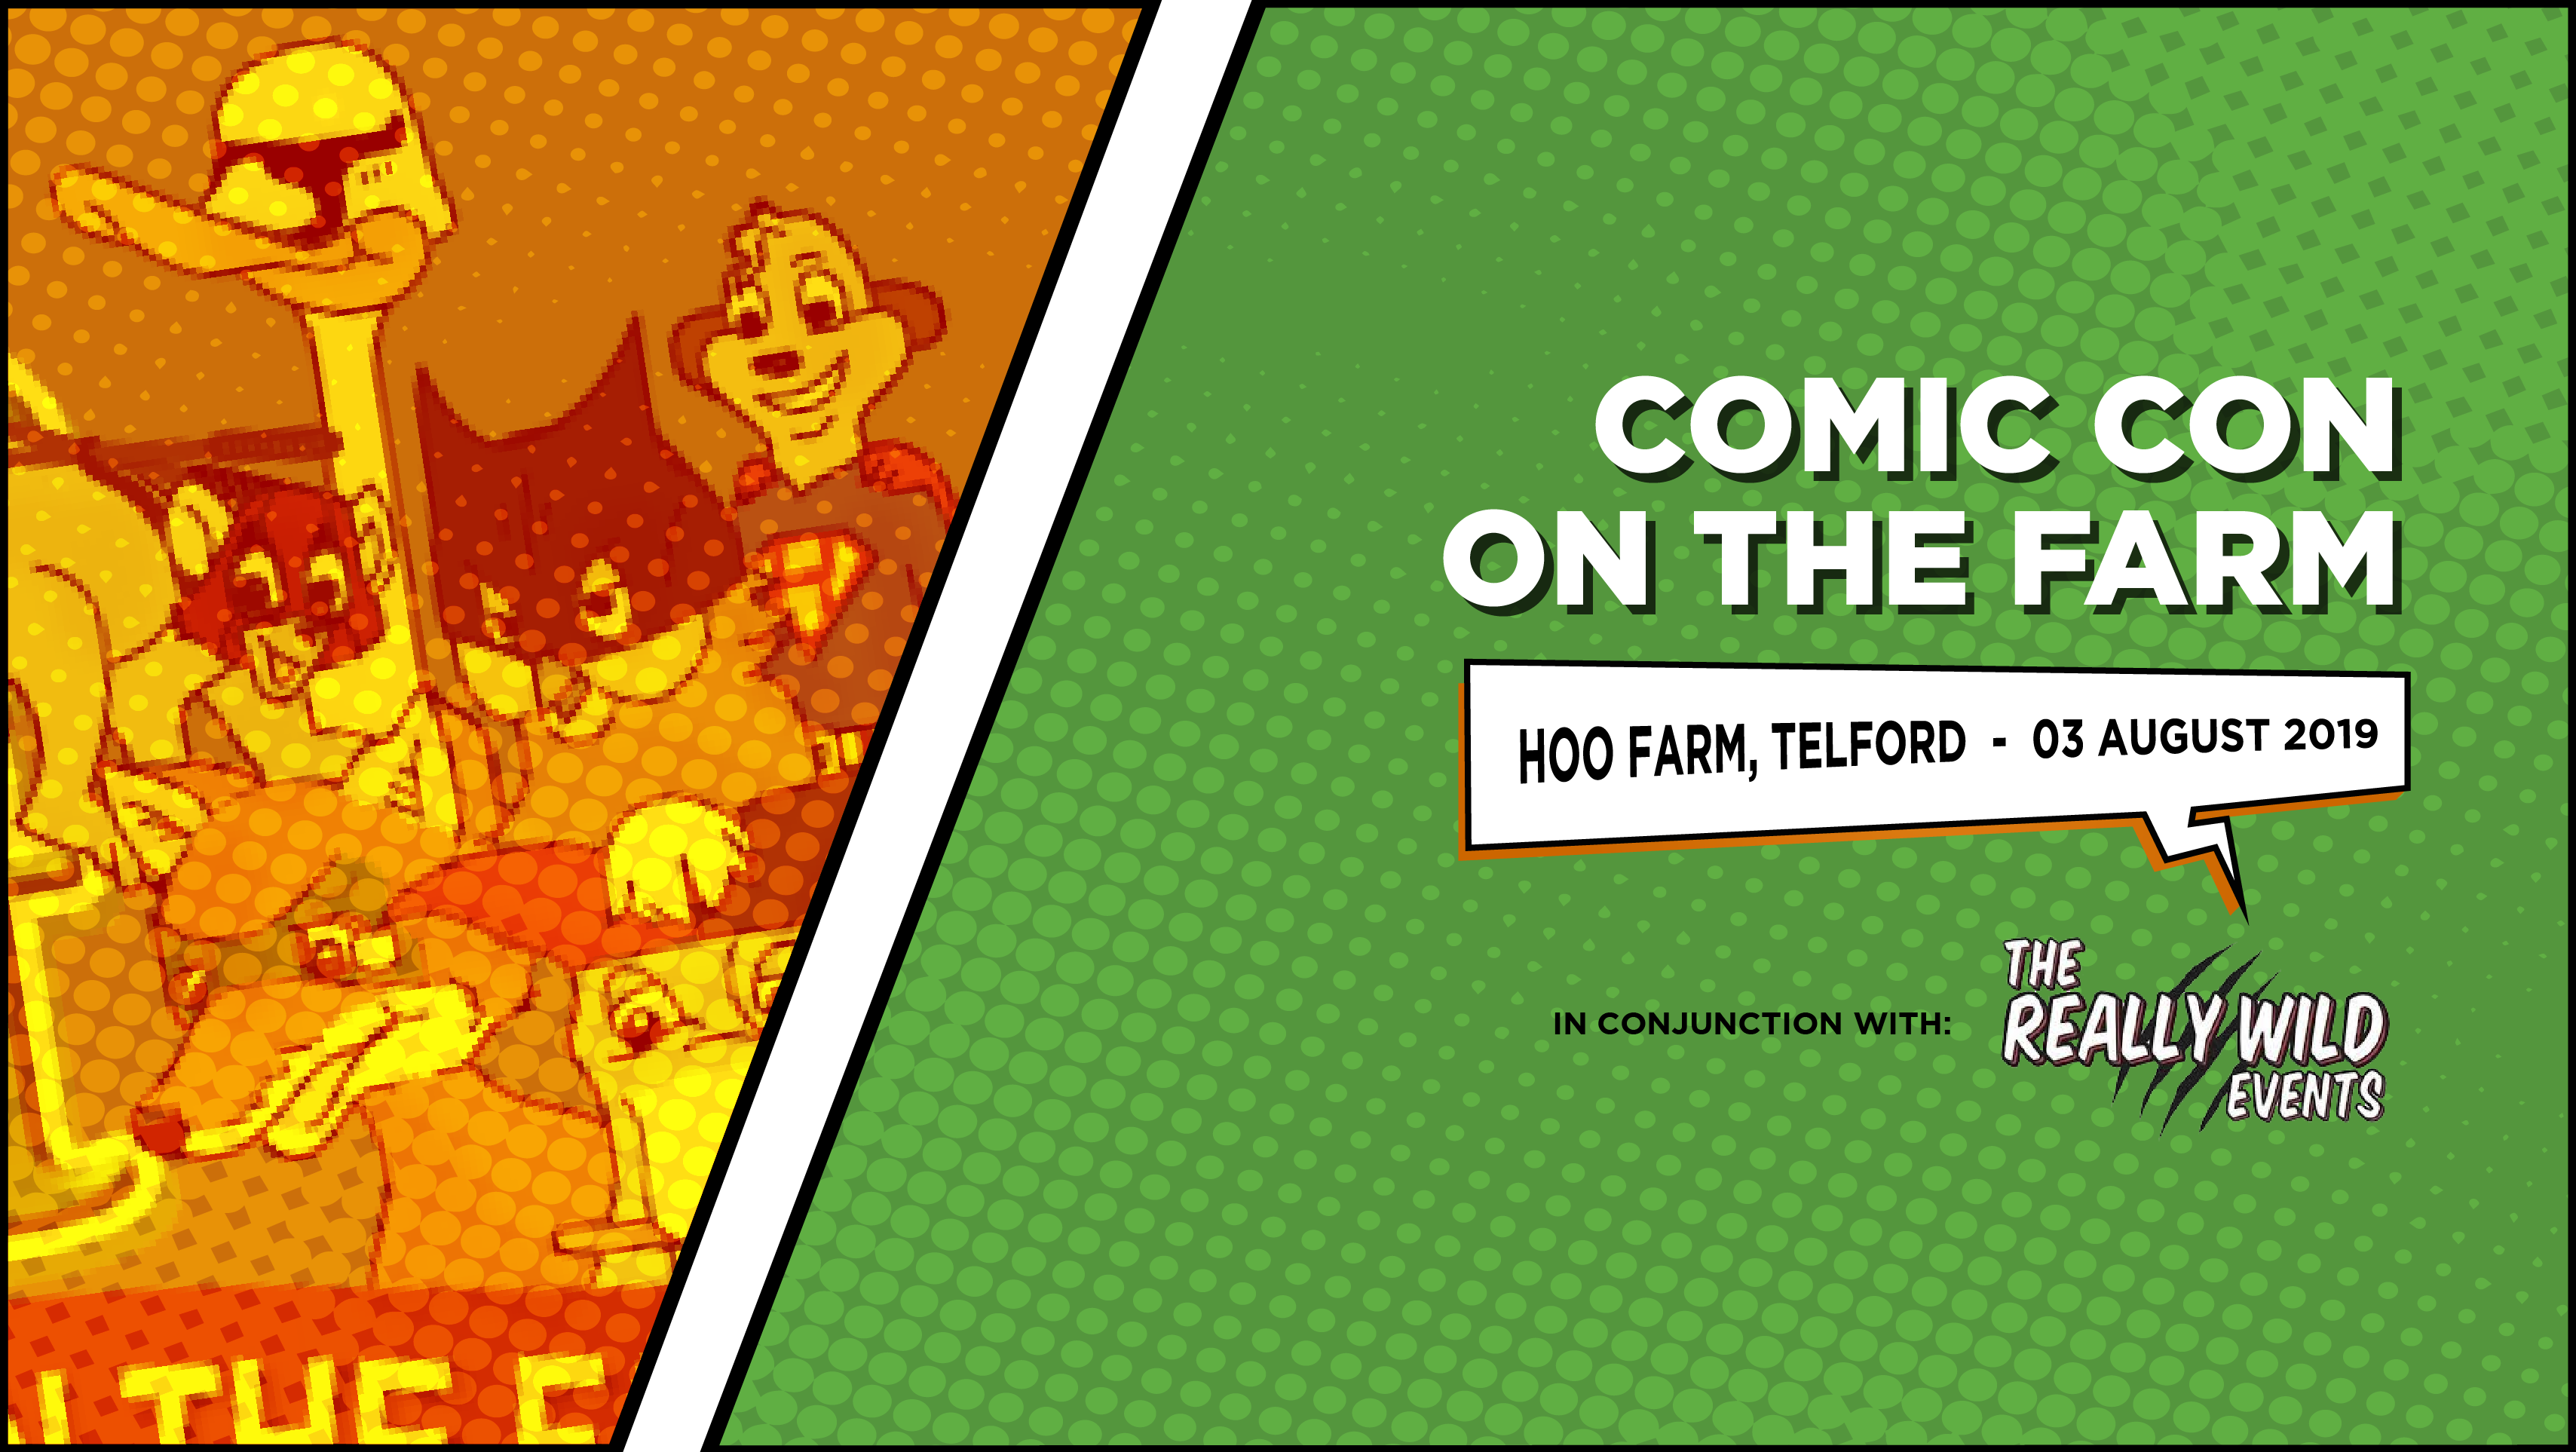 Hoo Fest 2019 - Comic Con on the Farm